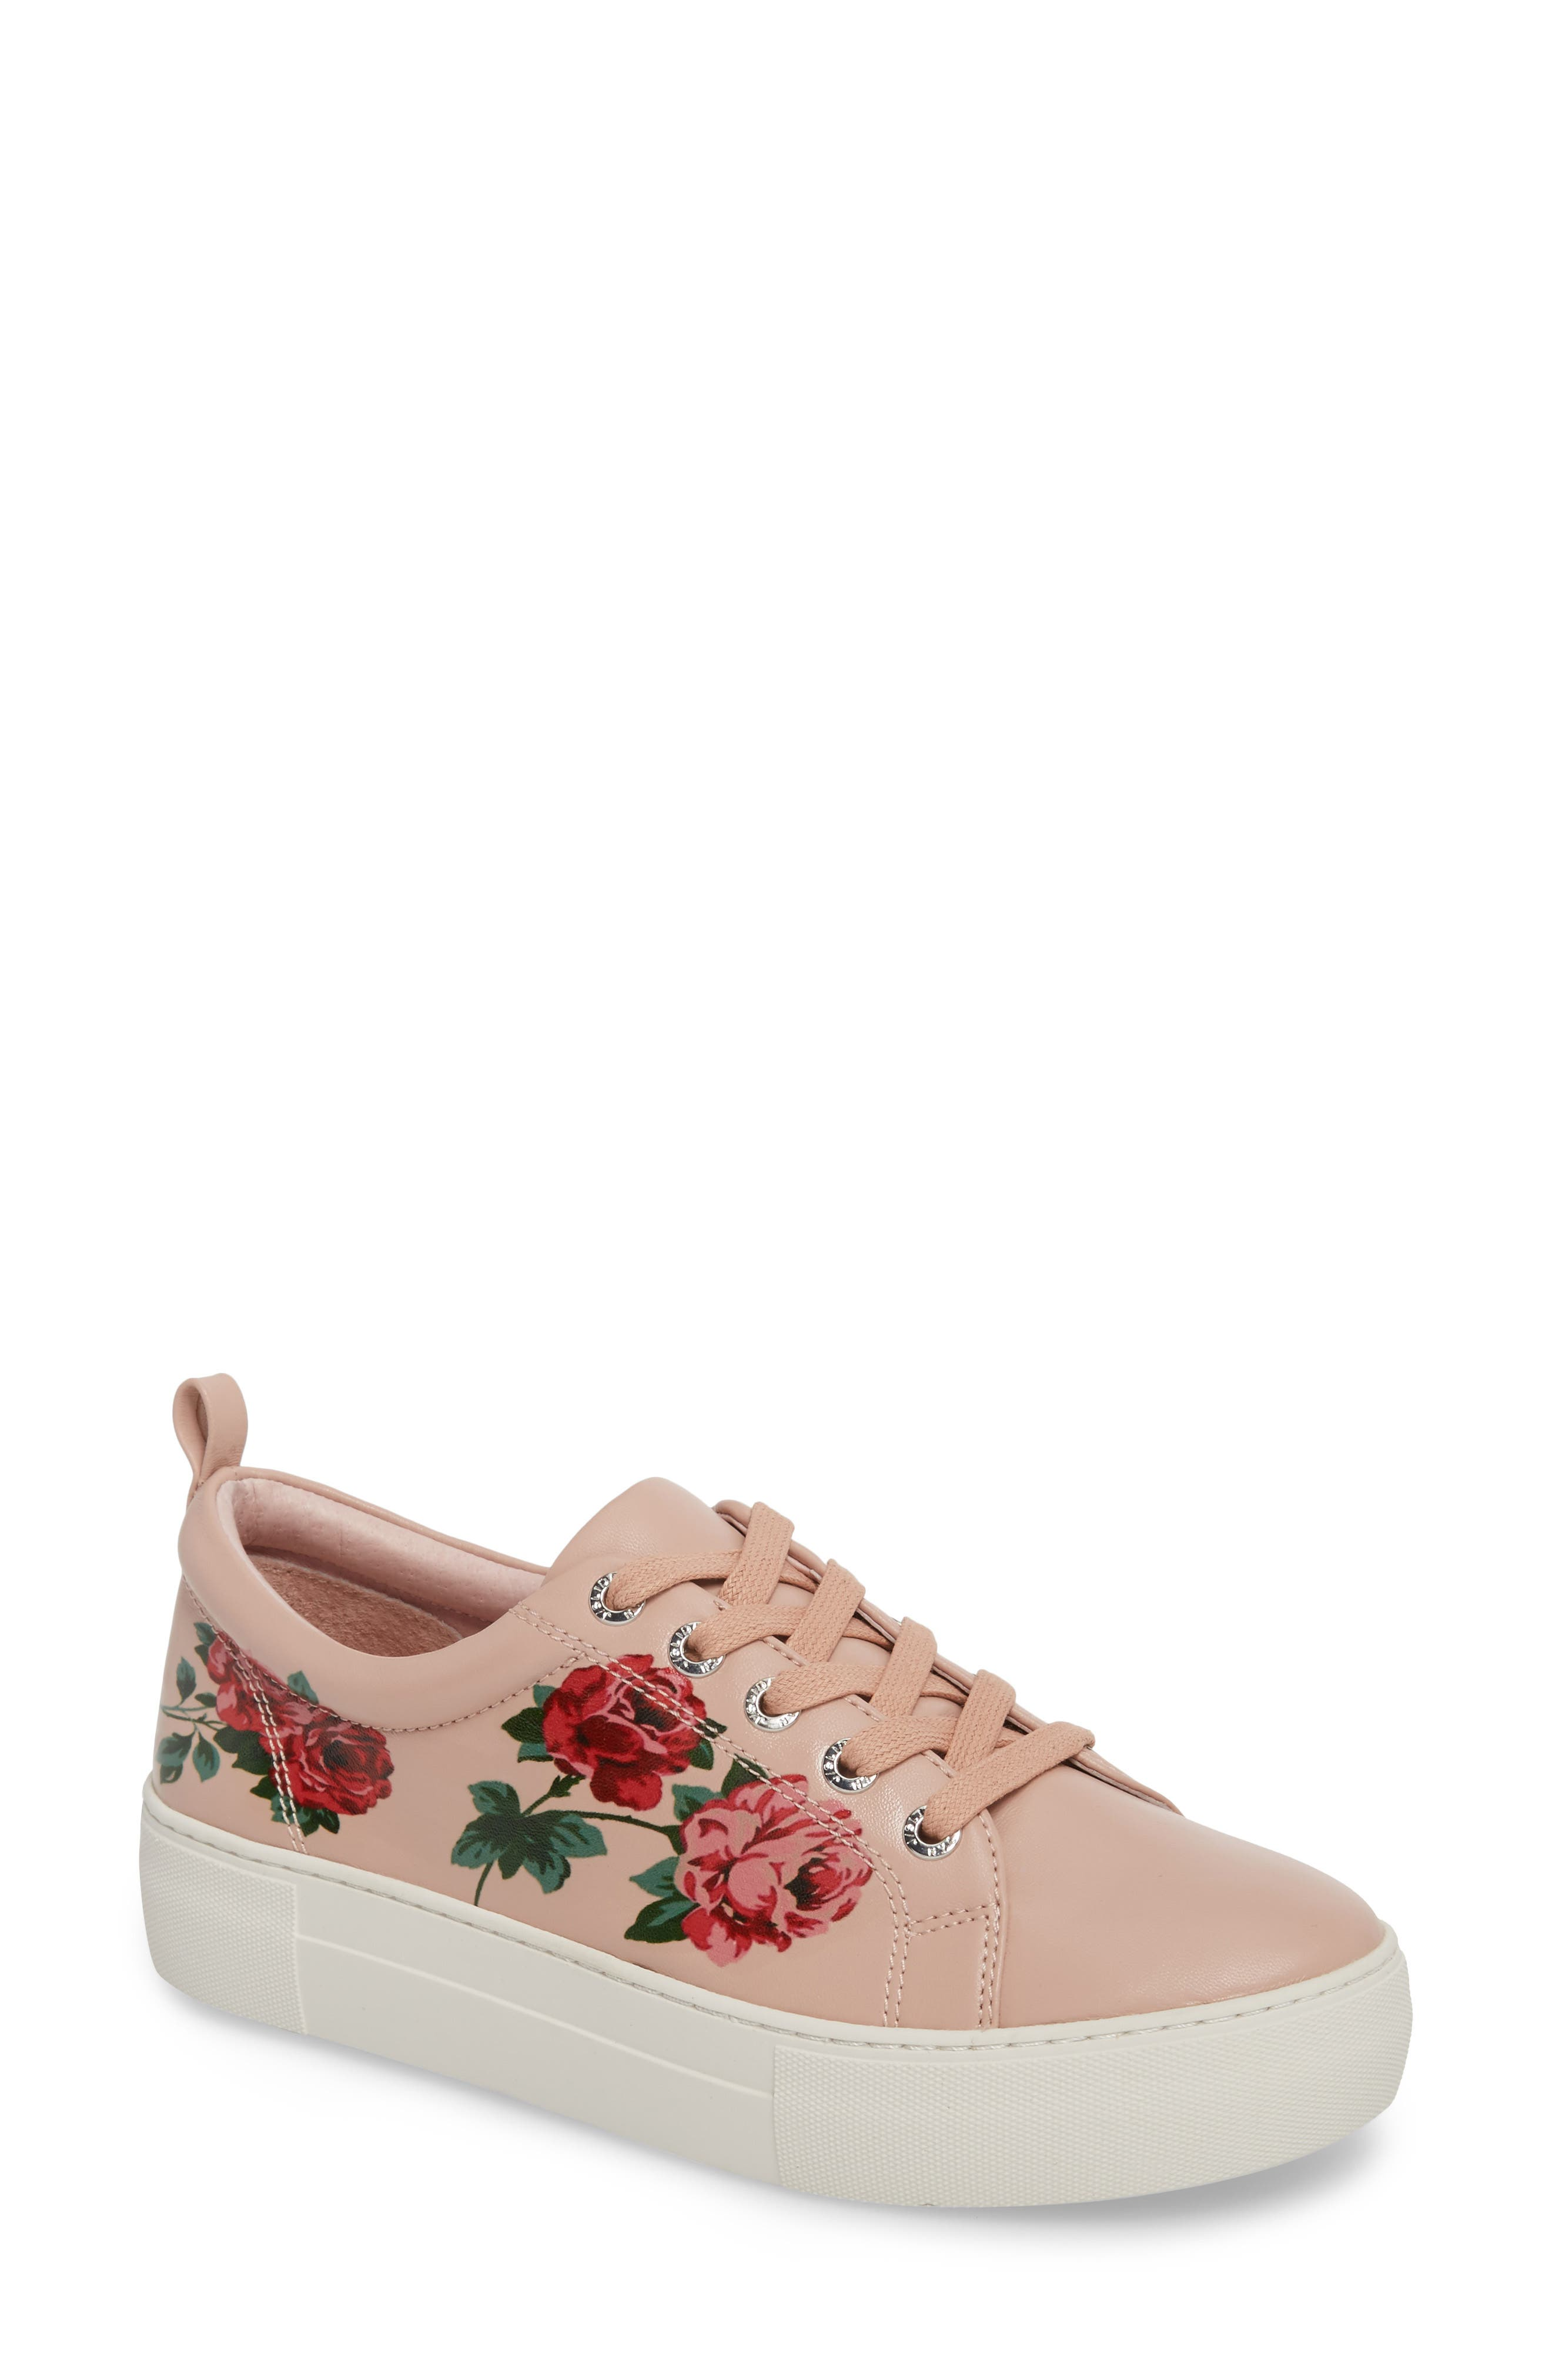 Adel Floral Sneaker,                             Main thumbnail 1, color,                             Pink Leather